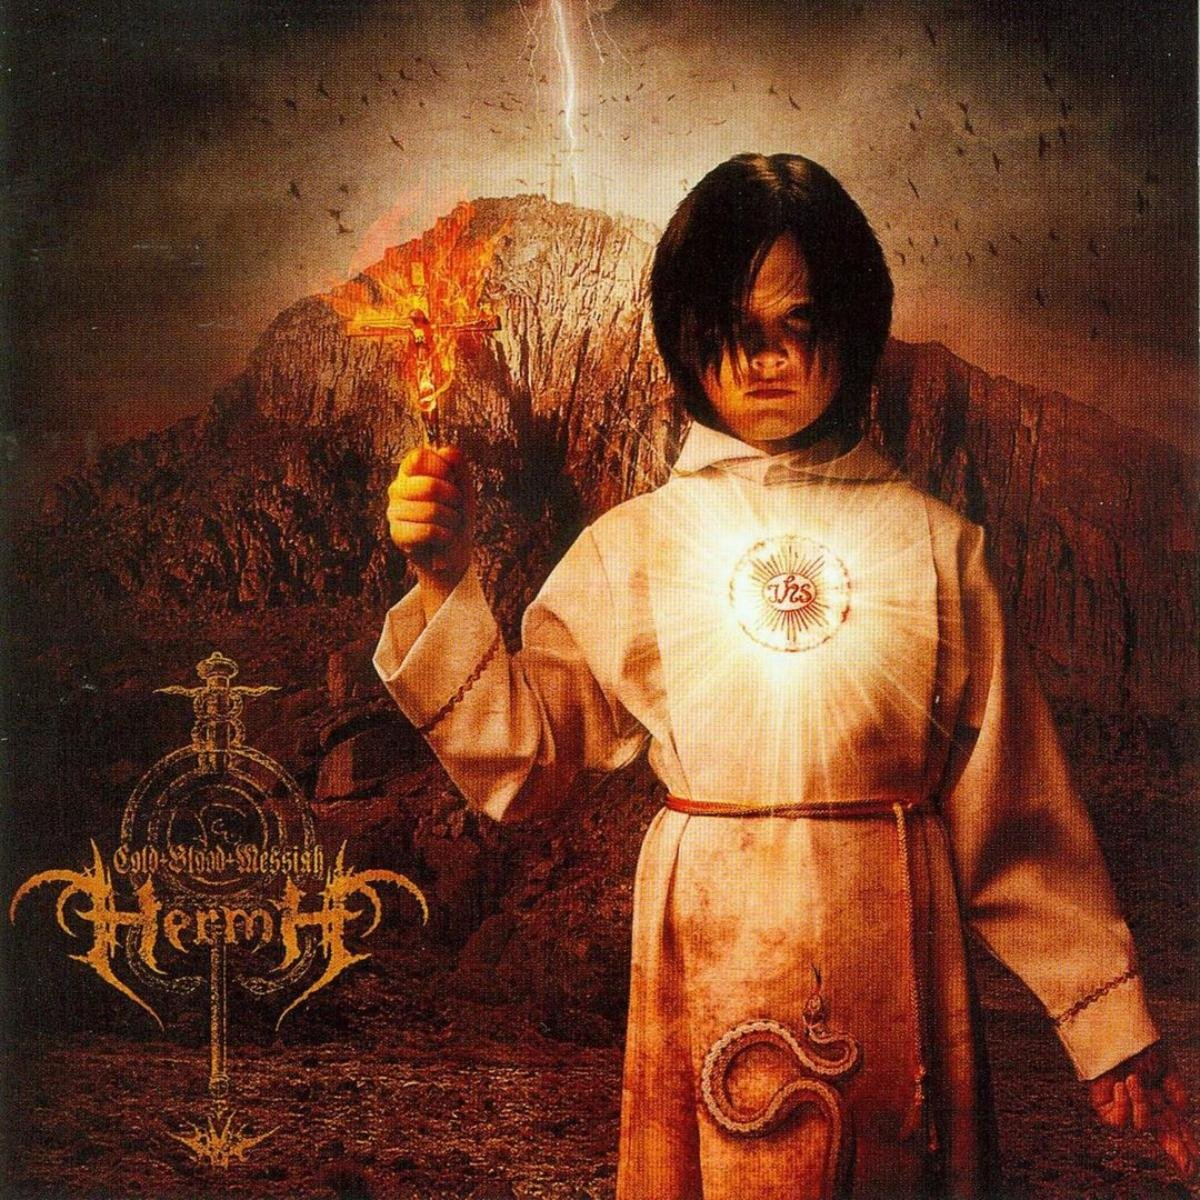 Hermh - Cold Blood Messiah (2008) [FLAC] Download